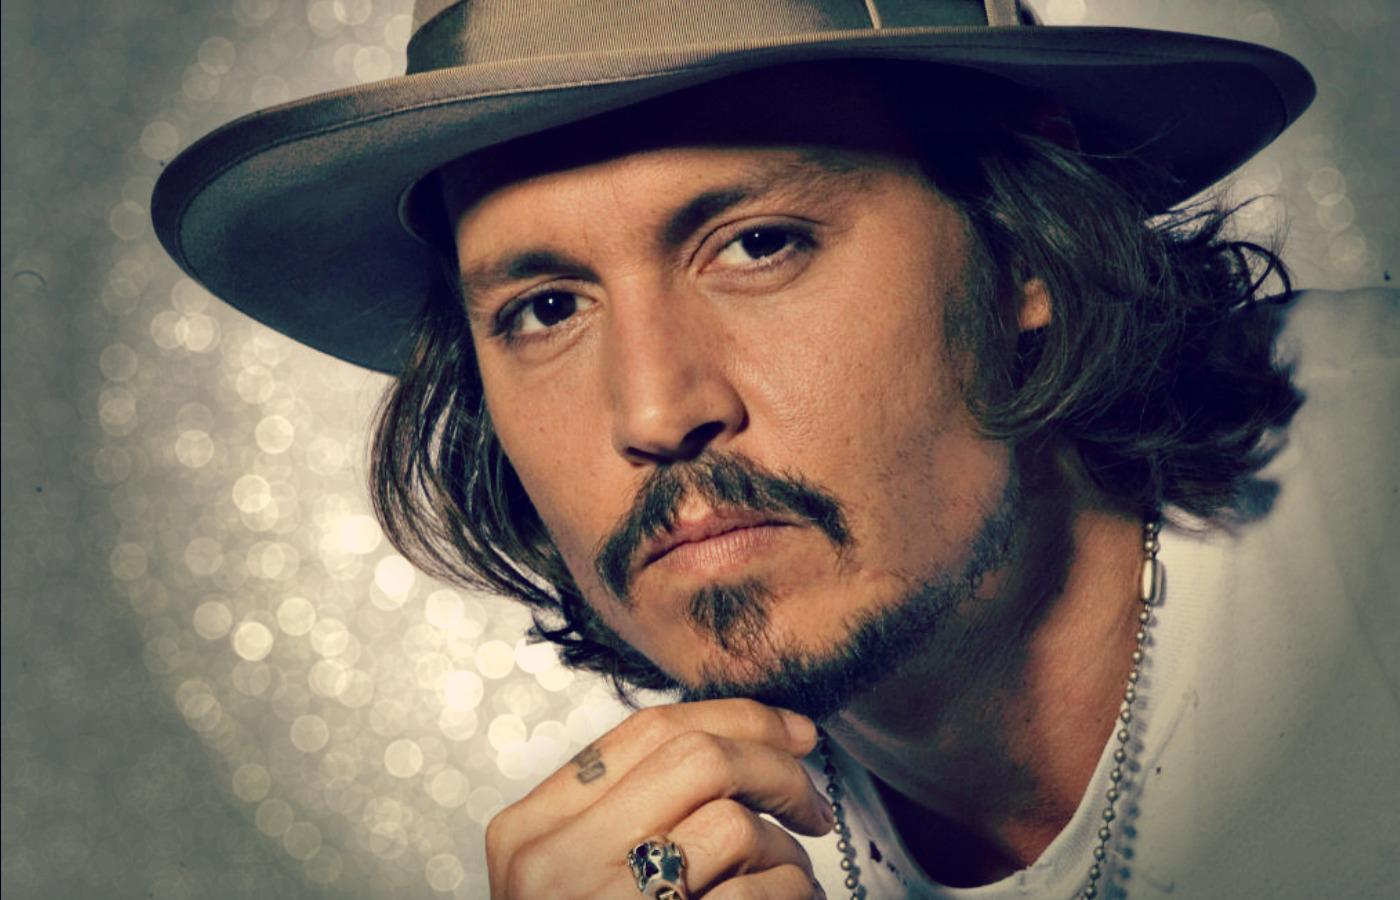 Johnny Depp - IMDbJOHNNY DEPP | Latest And Useful ImagesJohnny Depp to Become Dr. Seuss for Illumination and Universal ...Johnny Depp Joins The Mob (Again) As